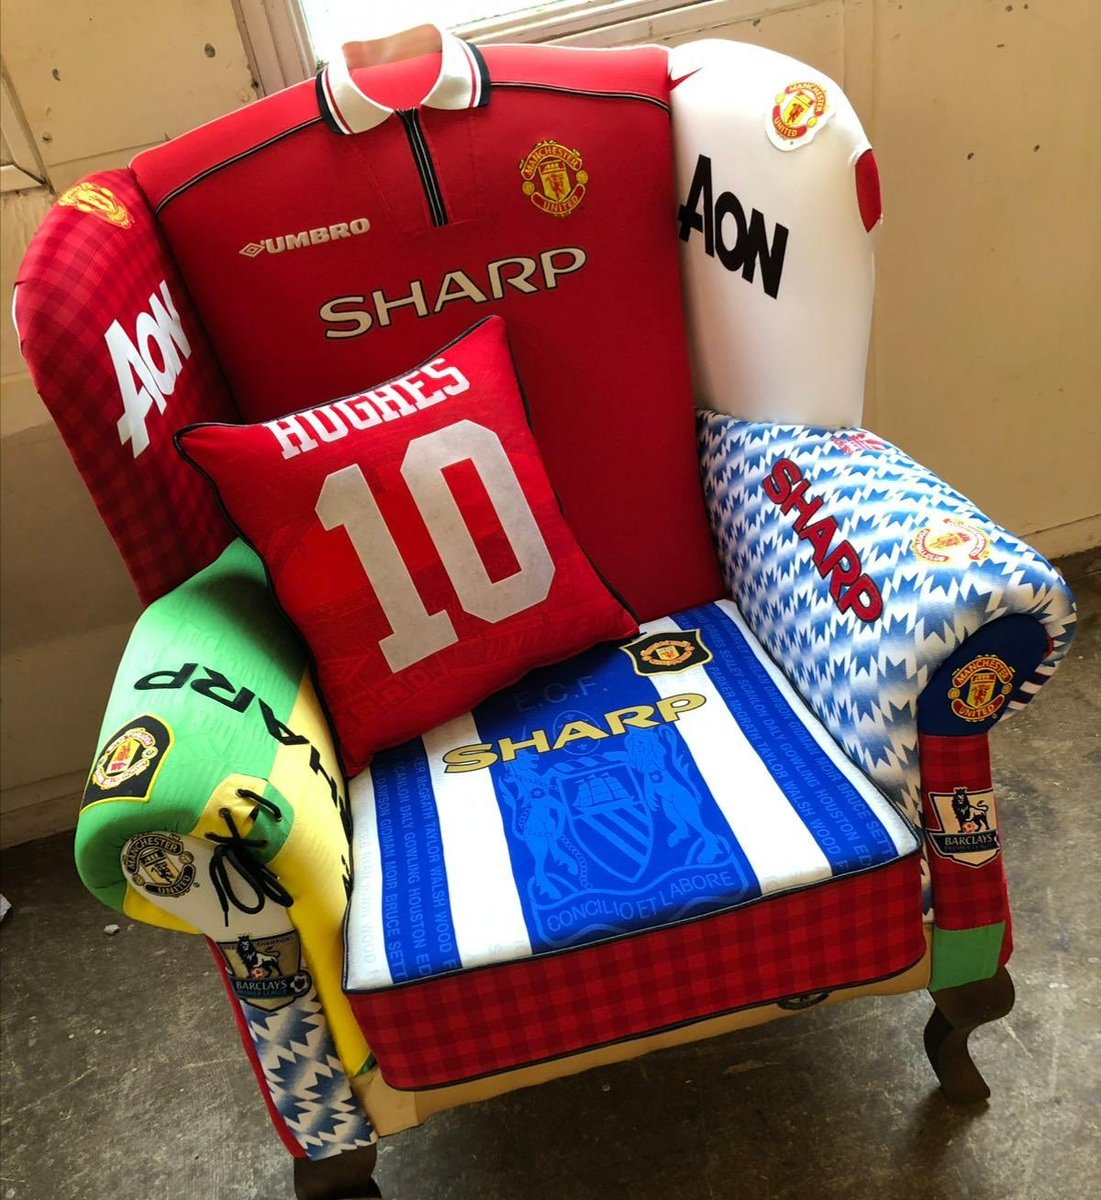 A #MUFC fan @GuvnorRhys has had his chair reupholstered by @RossPritch09 with his old football shirts! Bet his wife loves it!